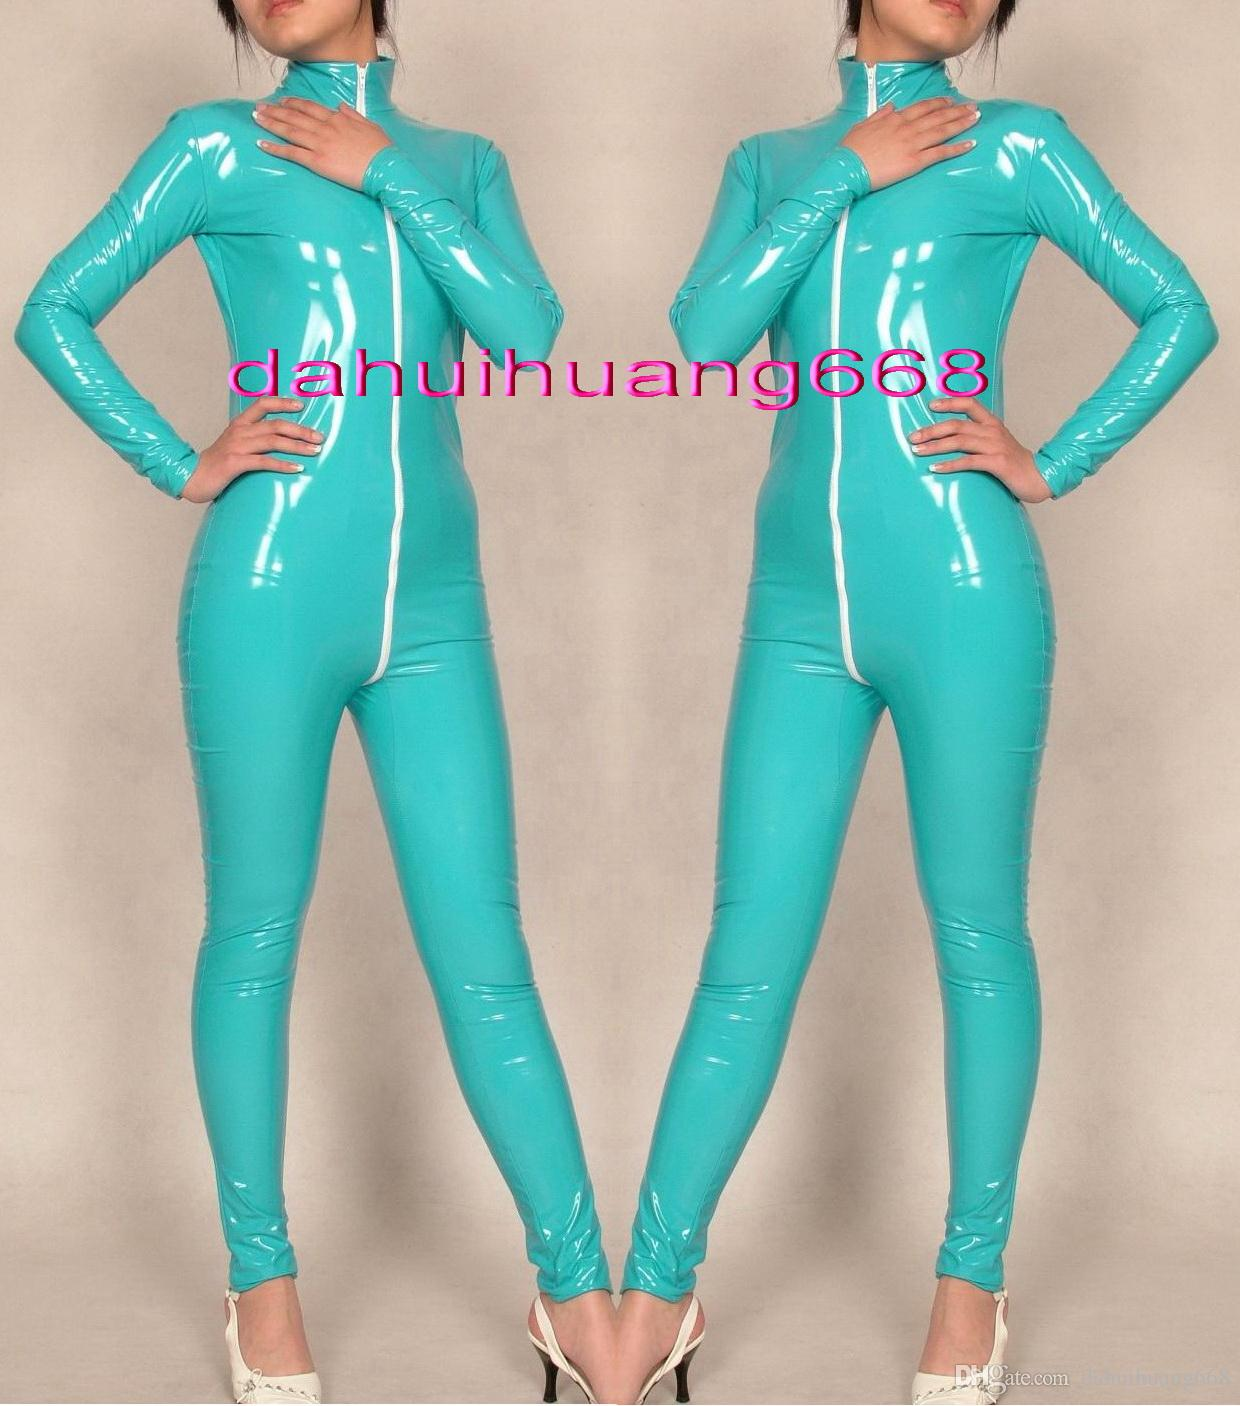 e1cf6ea5701 2019 Lake Blue Shiny PVC Catsuit Costumes Unisex Shiny Lake Blue PVC Body  Suit Unisex Sexy PVC Bodysuit Leotard Costumes With Long Zip DH179 From ...